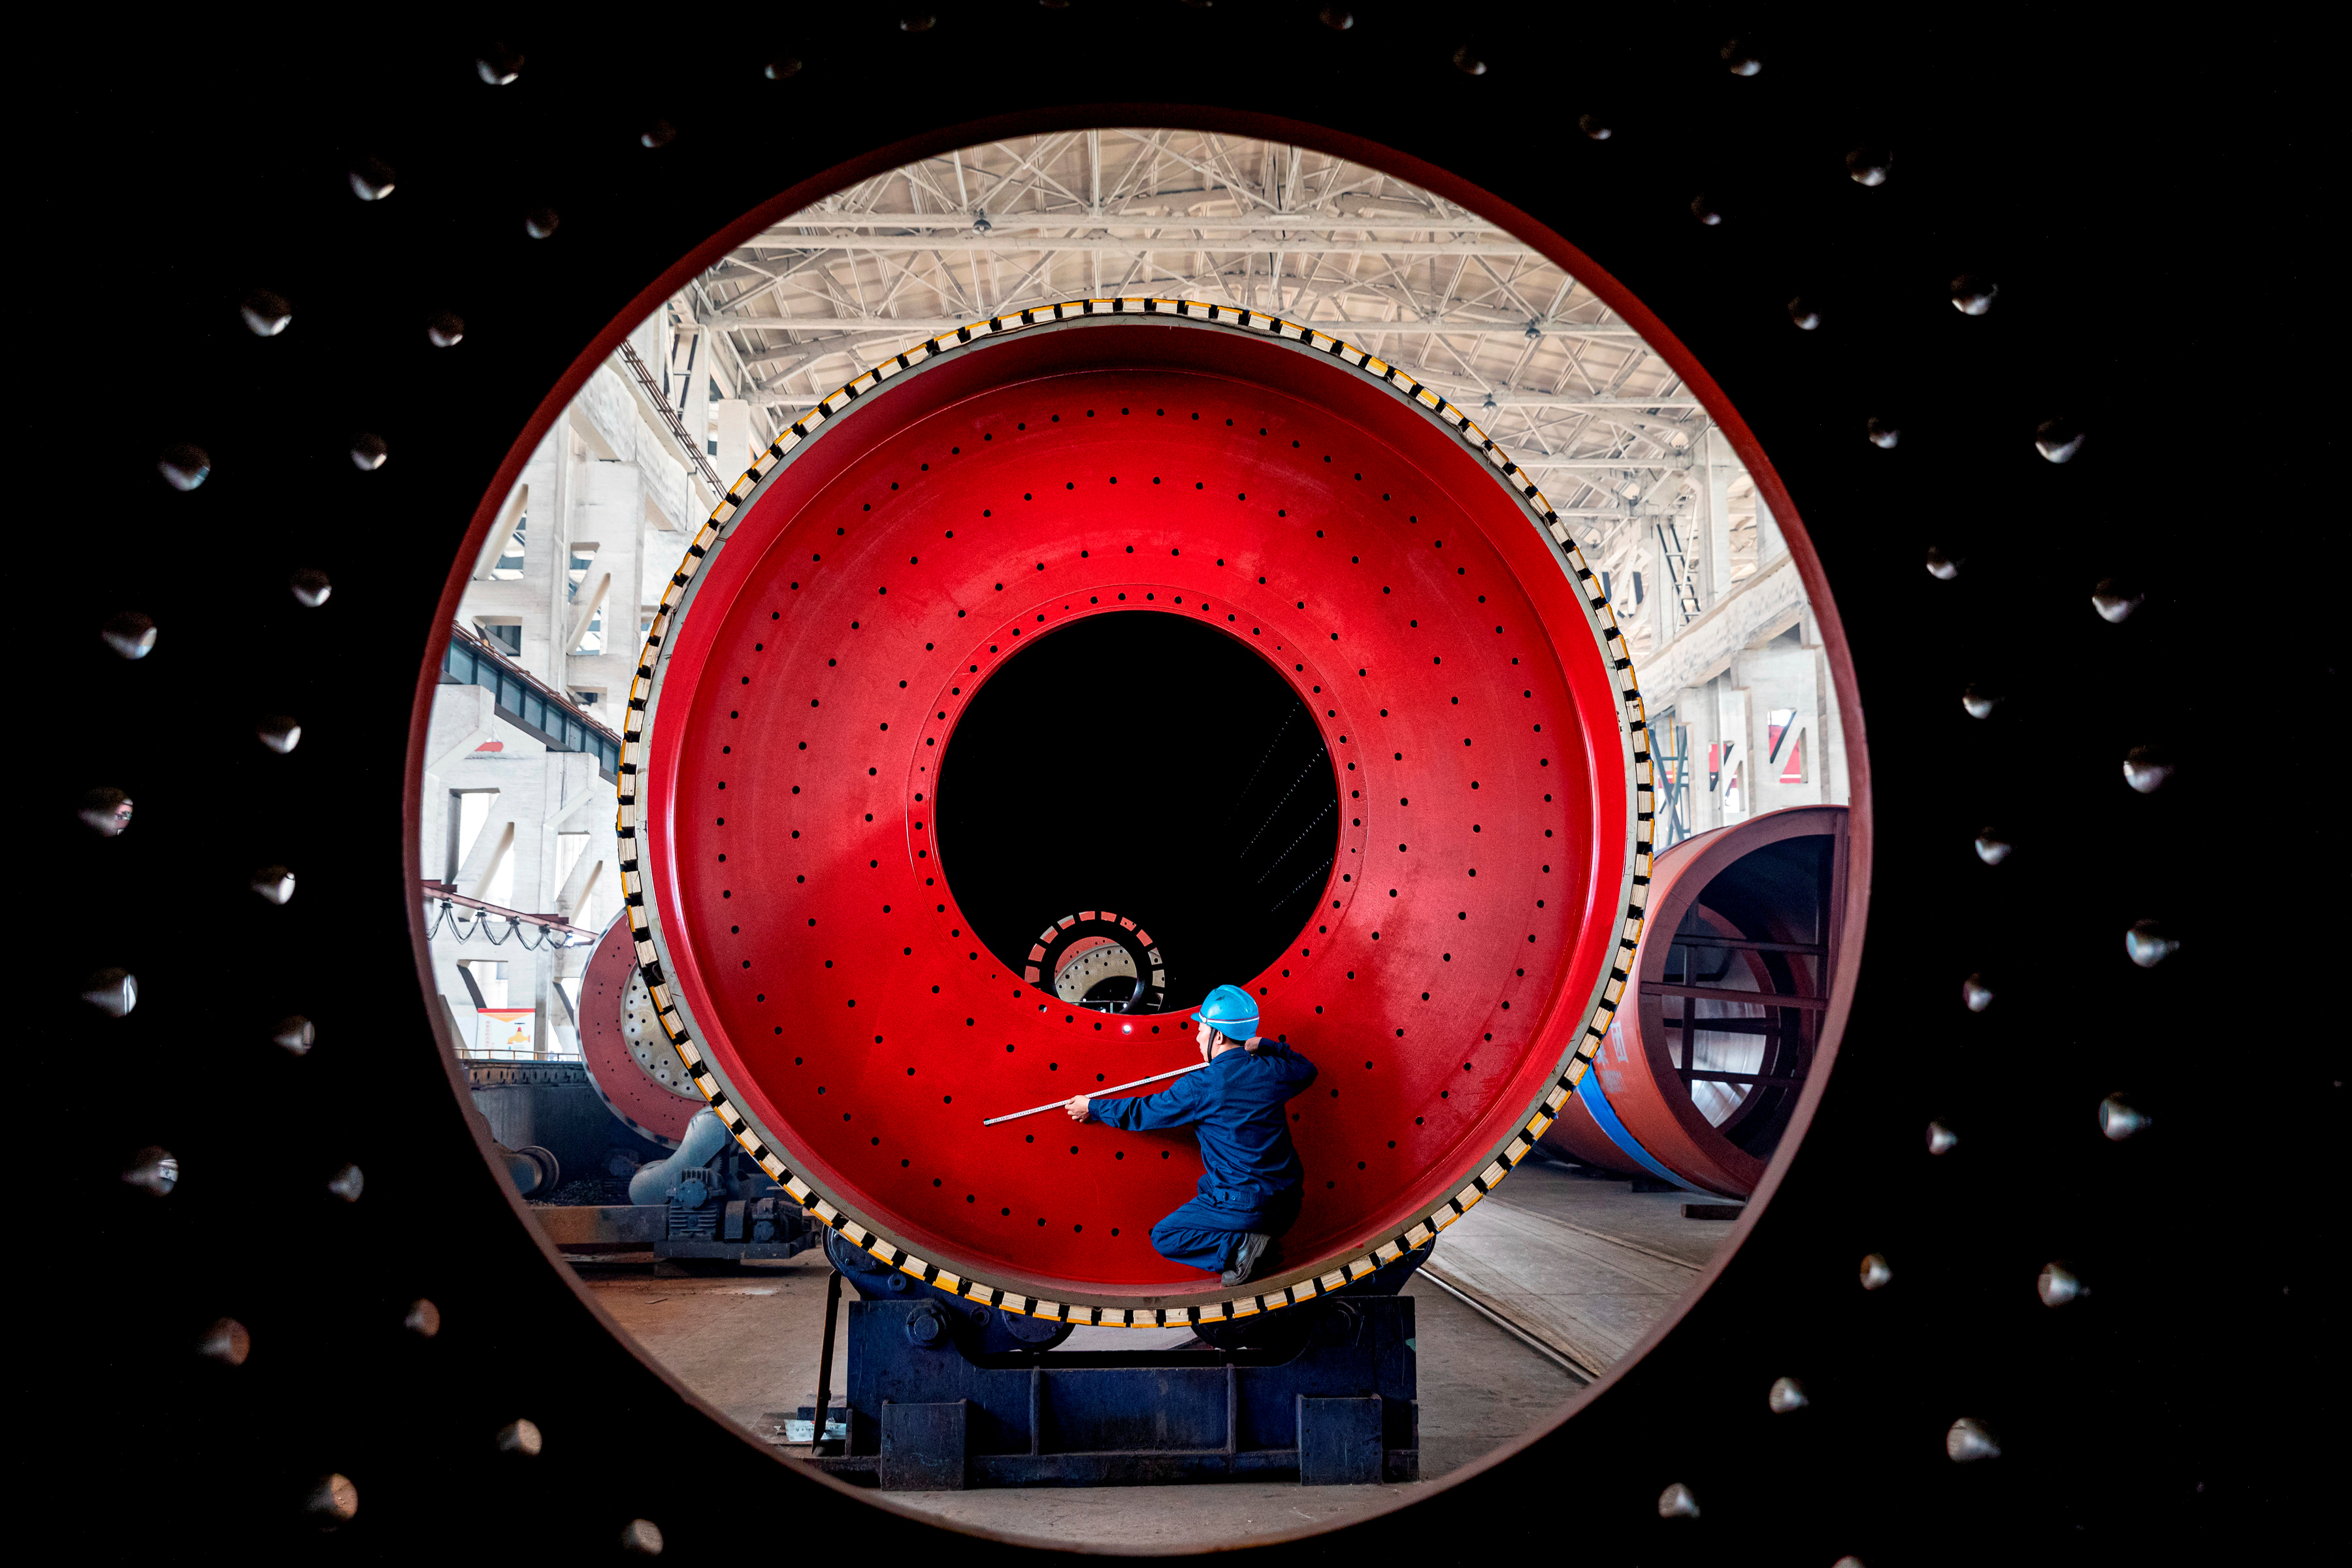 An employee measures a newly manufactured ball mill machine at a factory in Nantong, Jiangsu province, China June 28, 2019. REUTERS/Stringer/File Photo